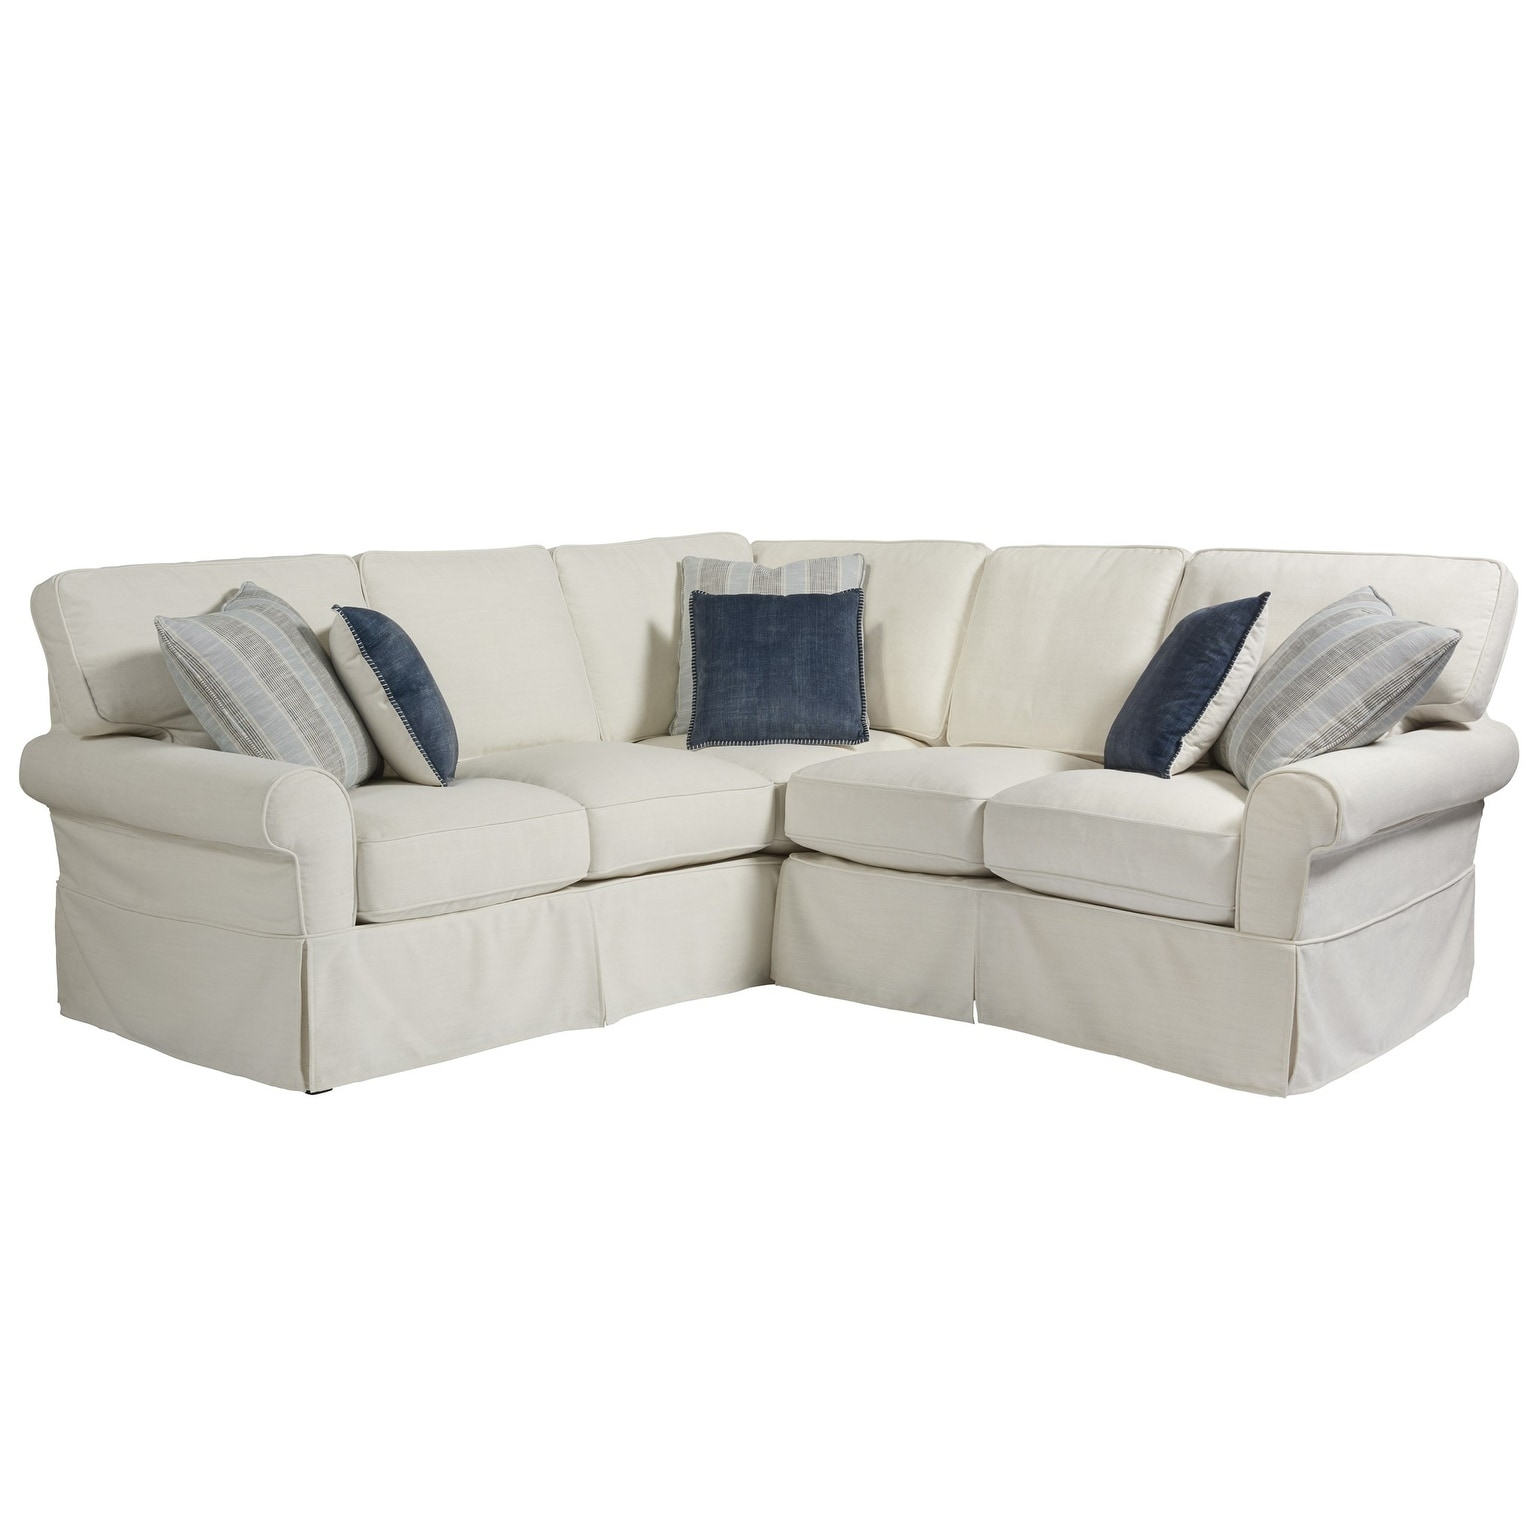 Ventura 5 Seat Sectional Sofa - Multiple Colors